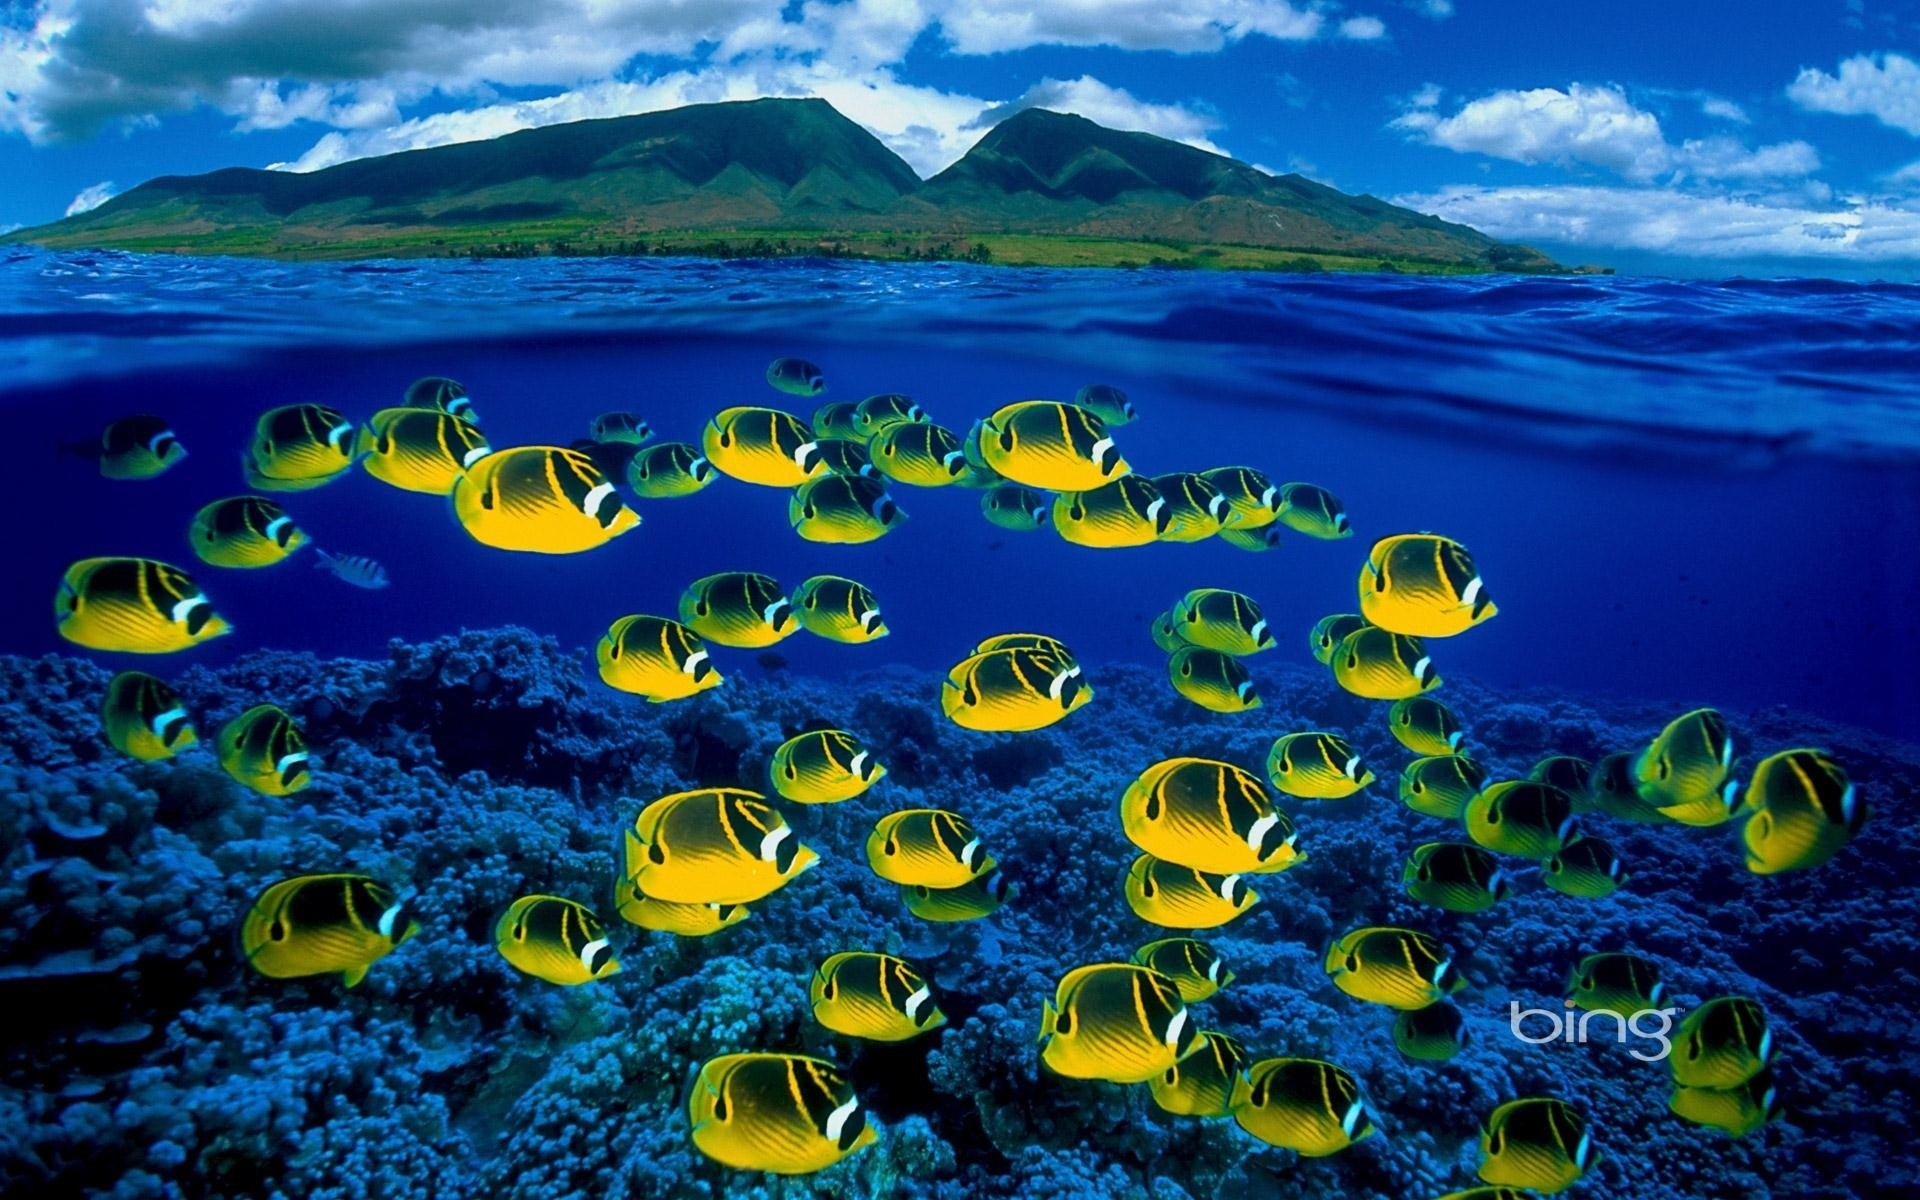 Wallpaper Fish In Water Posted By Michelle Mercado